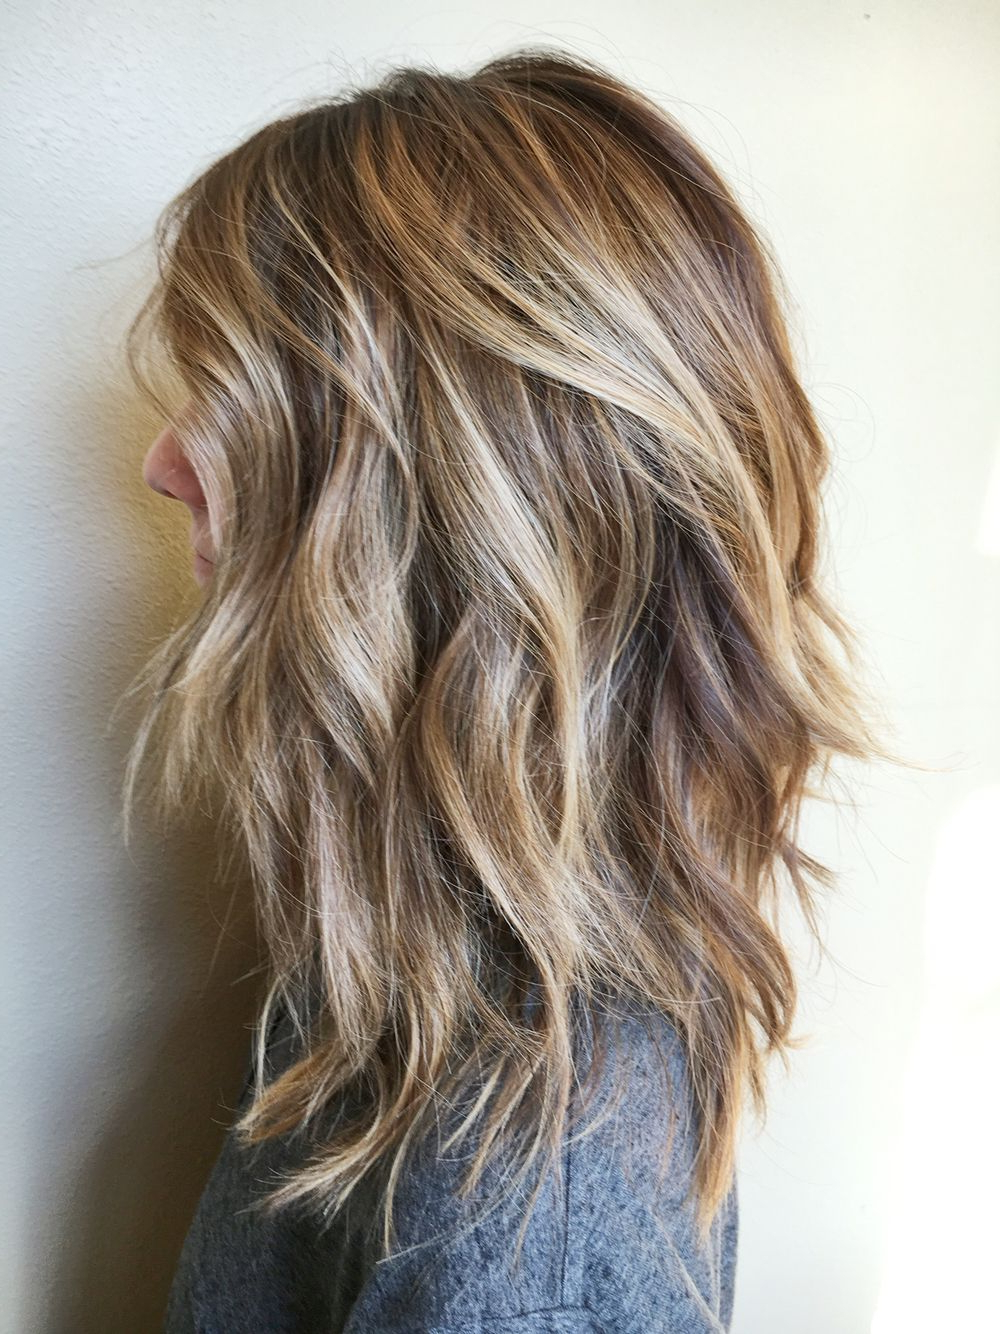 Most Current Medium Medium Hairstyles With Layers Inside 40 Amazing Medium Length Hairstyles & Shoulder Length Haircuts (View 13 of 20)